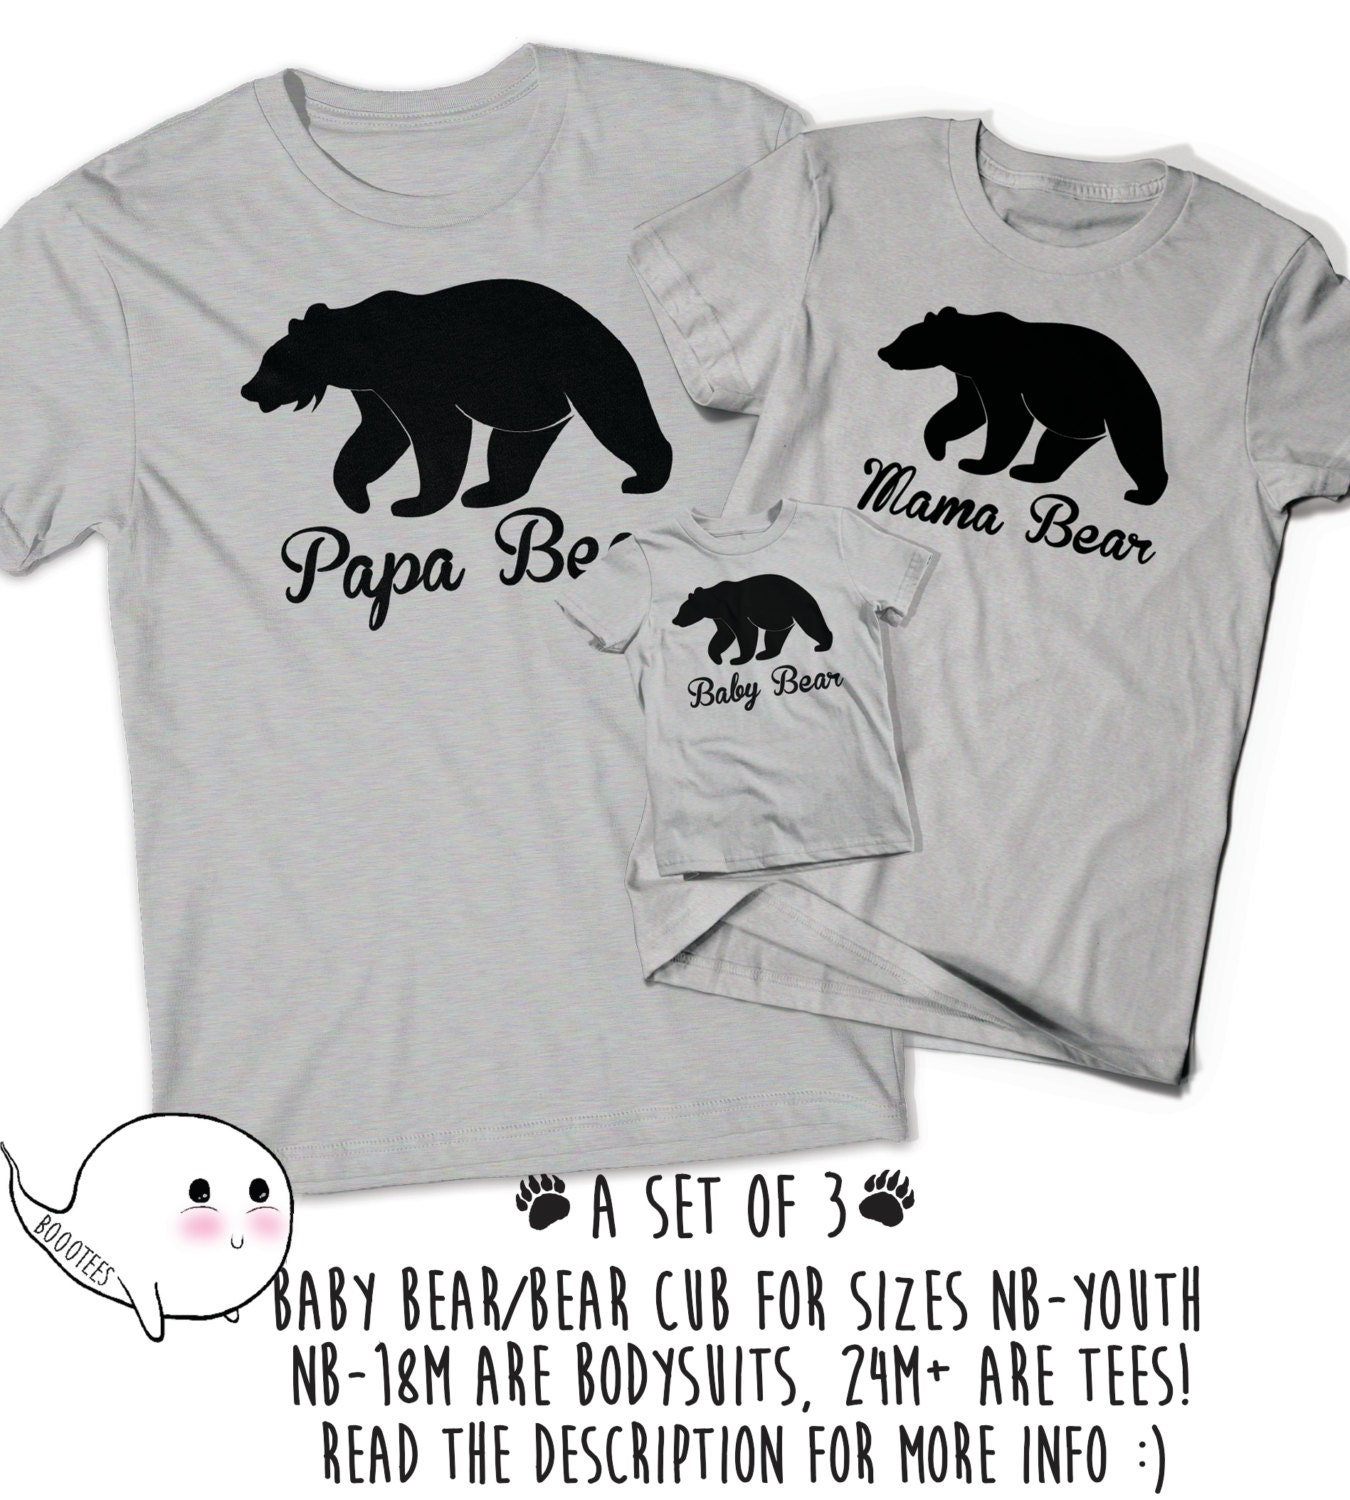 Papa Bear Baby Bear Matching Shirts Set Fathers Day Gift Idea T-Shirt Tee Infant New Toddler Child Kid Gift New Dad Baby Shower Pop Dad Cub xUfRu0XK